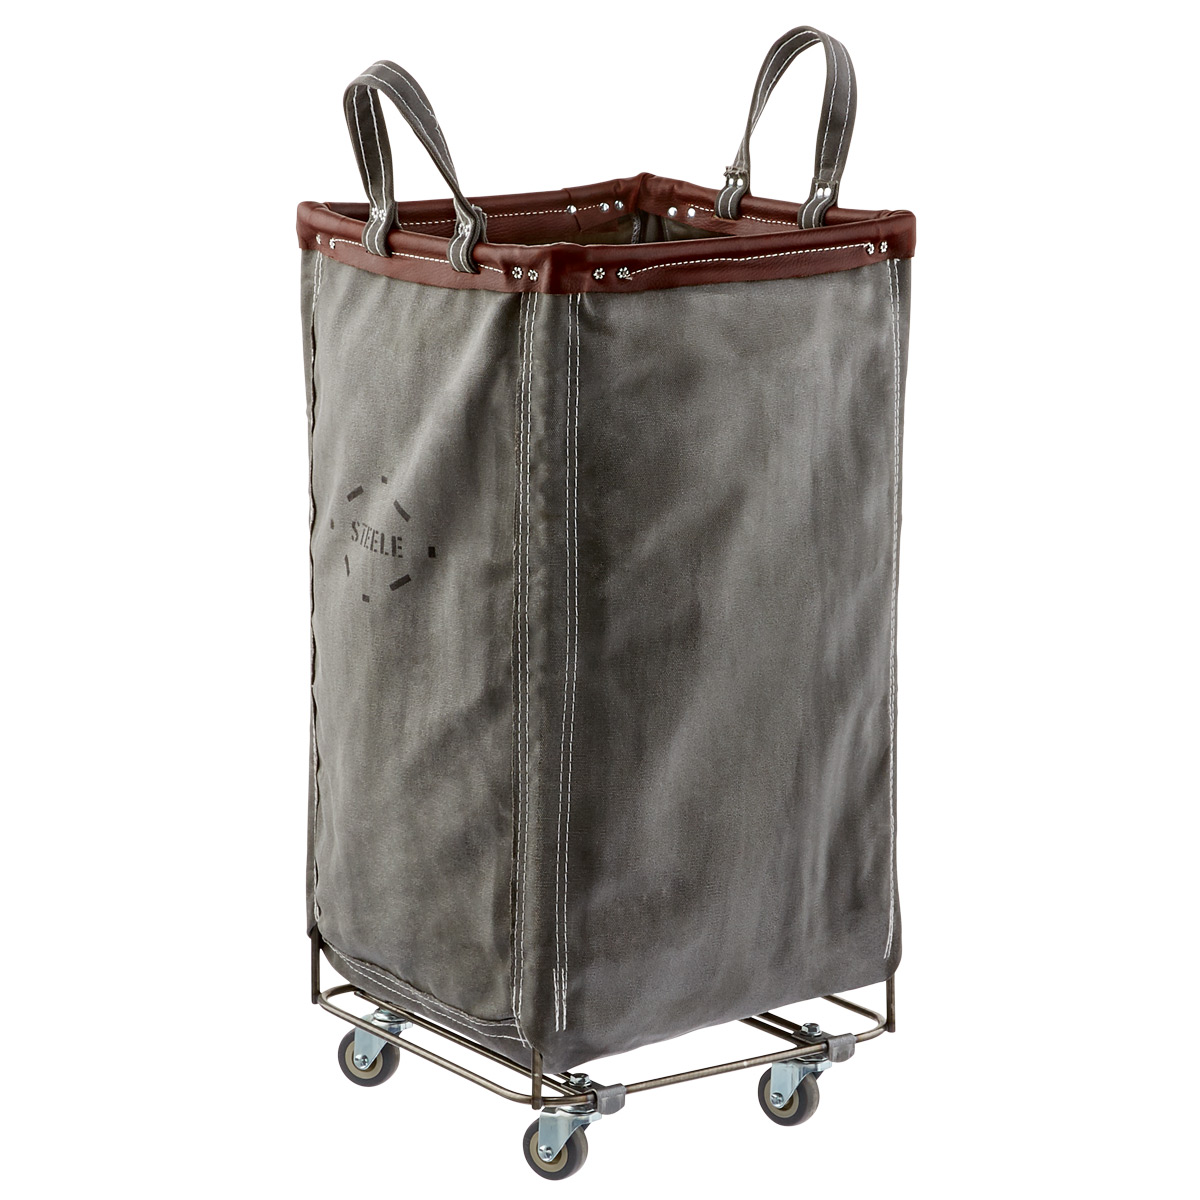 Steele Canvas Grey & Brown Leather Squared Sorting Hamper